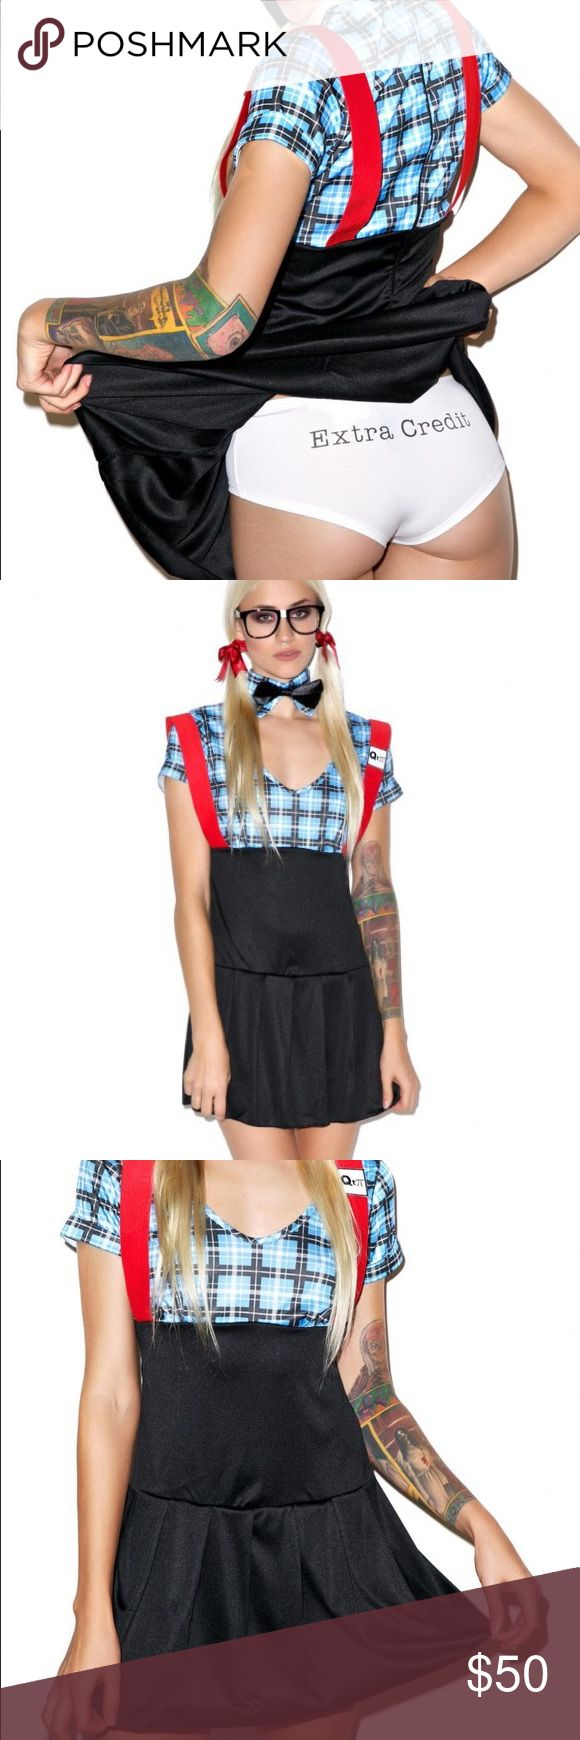 4pc britney spears sexy nerd costume set boutique - Naughty Librarian Halloween Costume